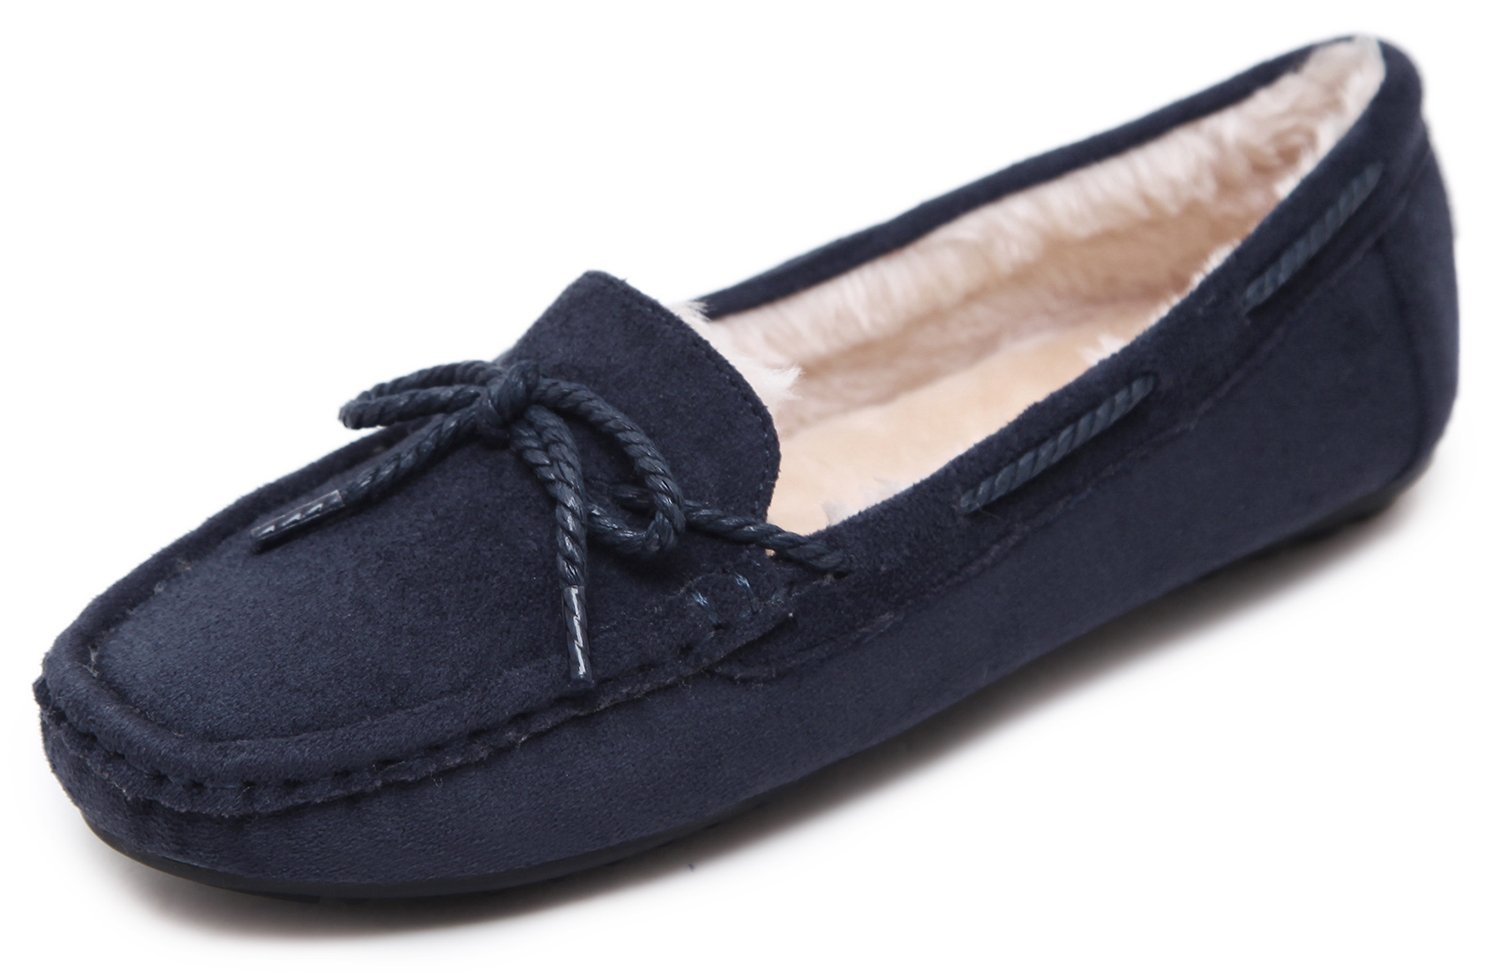 Women's Winter Moccasin Lace Bowtie Design Plush Padded & Lining Suede Low-Top Loafer Flats Home Slipper Shoes Bow Slip On Slip-On Cozy Slippers Thermal Warm, Navy Blue